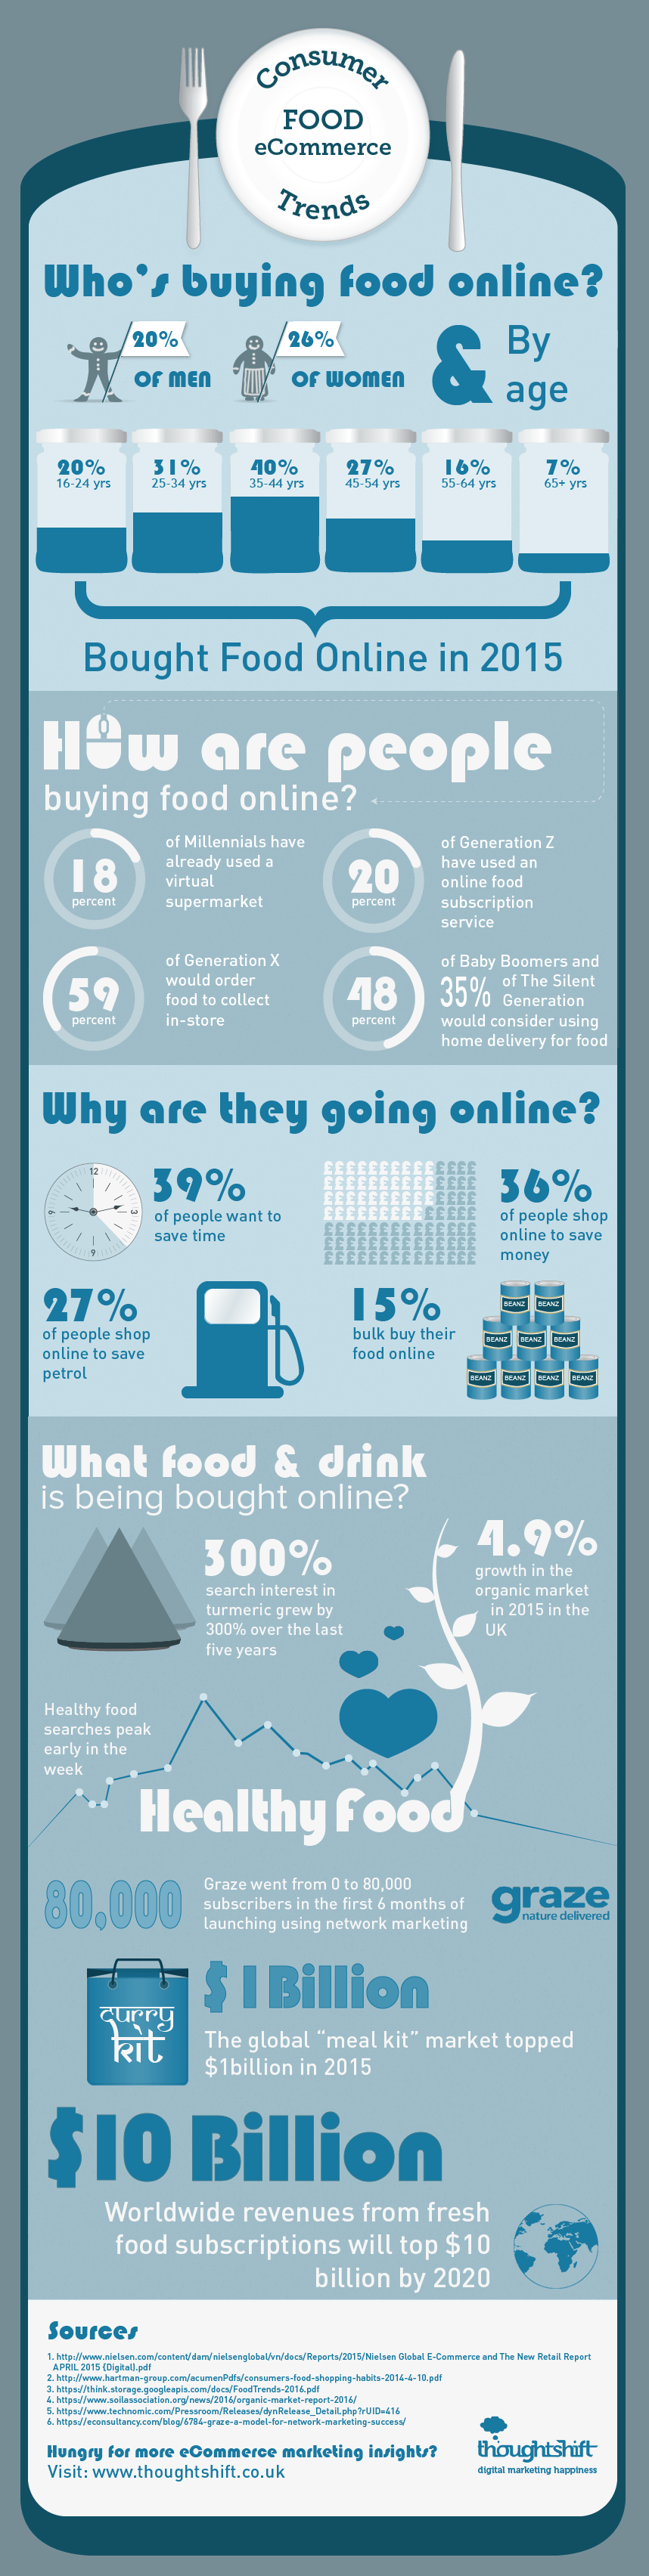 Consumer food ecommerce trends Infographic